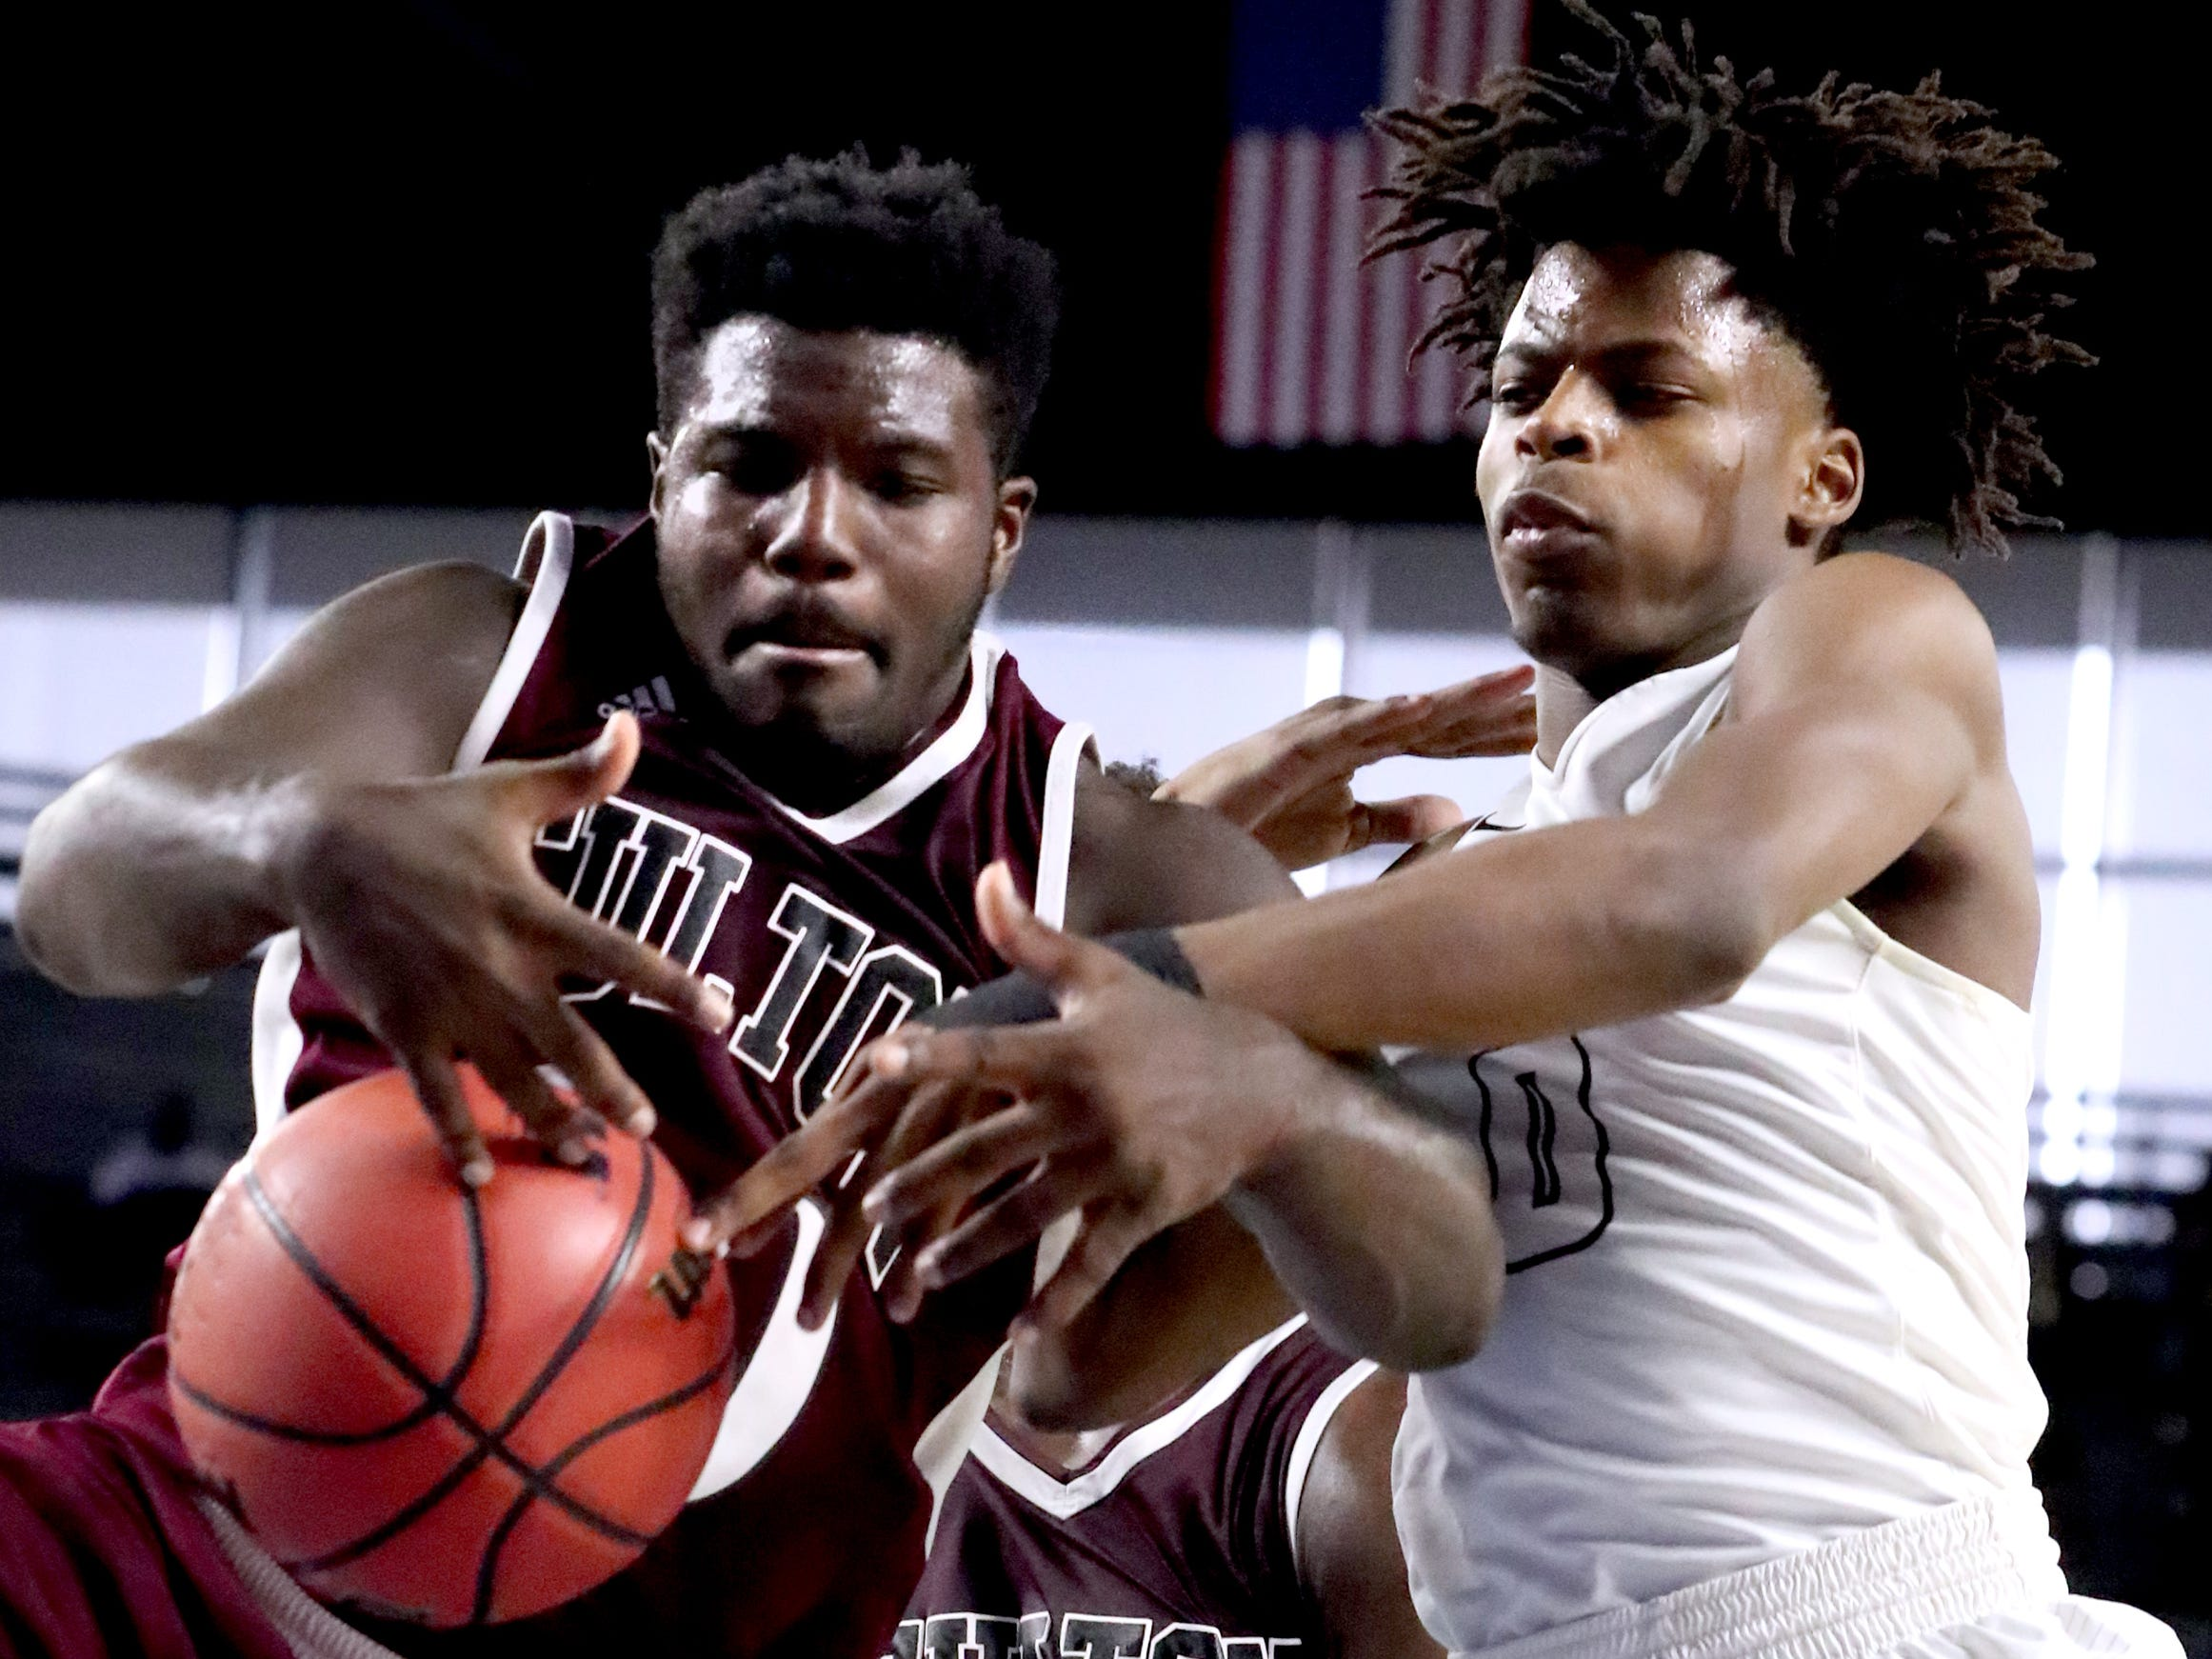 Fulton's Jashaun Fenderson (30) and Mitchell's Michael Rice (0) both go after a rebound during the quarterfinal round of the TSSAA Class AA Boys State Tournament, on Wednesday, March 13, 2019, at Murphy Center in Murfreesboro, Tenn.